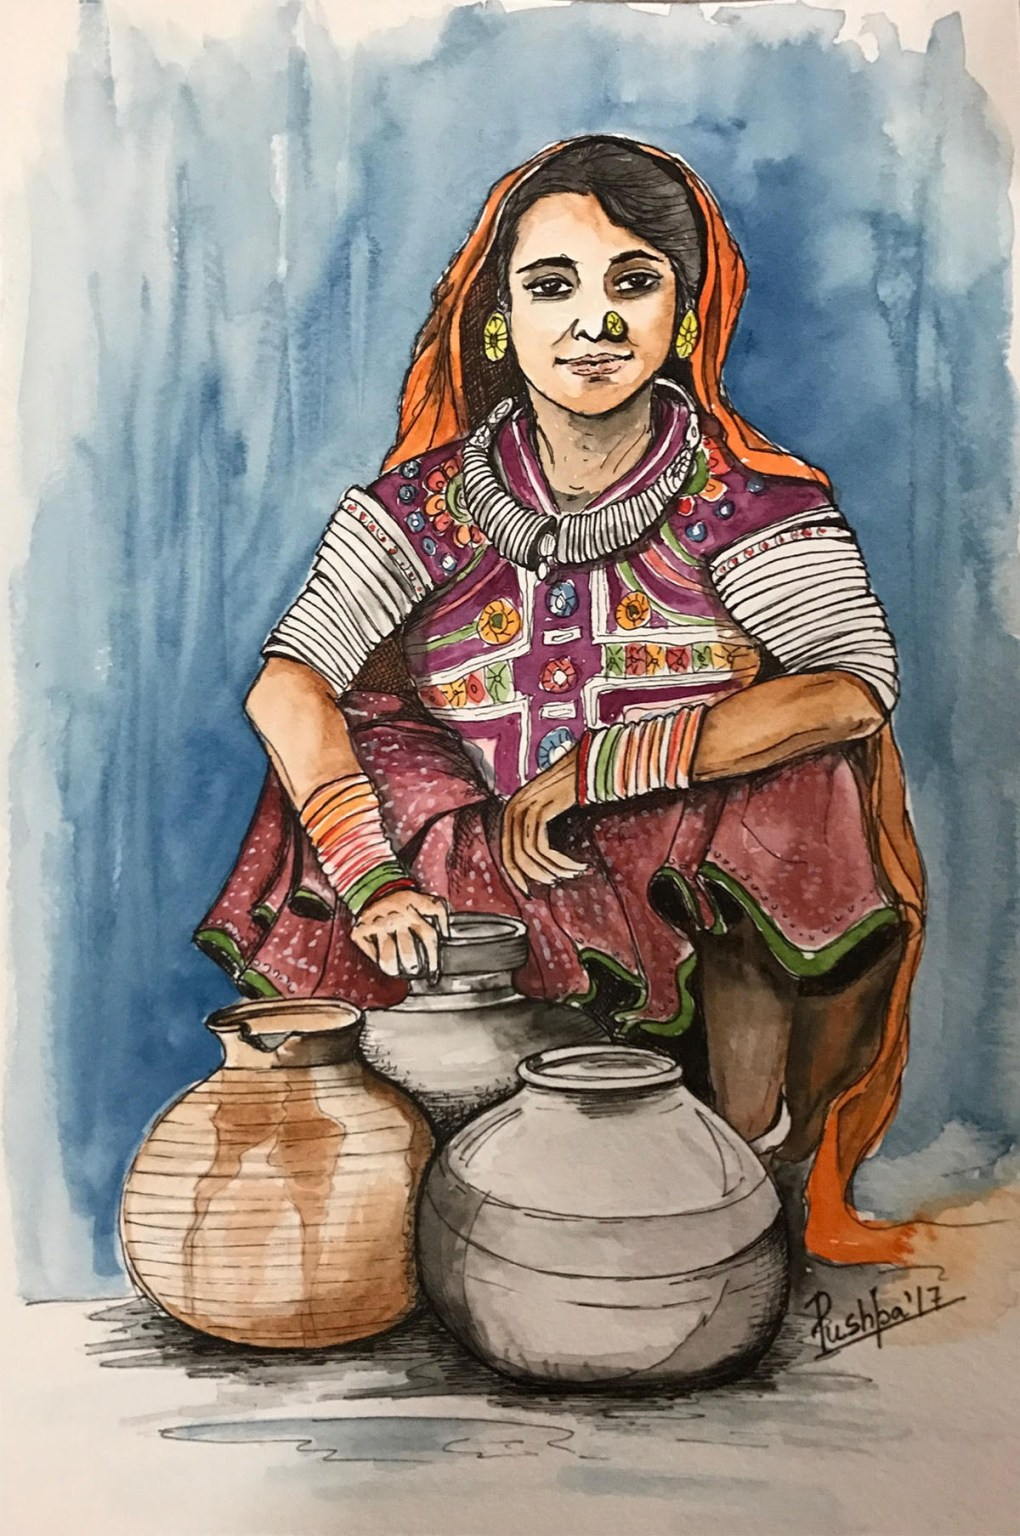 Indian Village Woman - 1, painting by Pushpa Sharma, Watercolour & Ink pen on Archival Paper, 12 x 8 inches